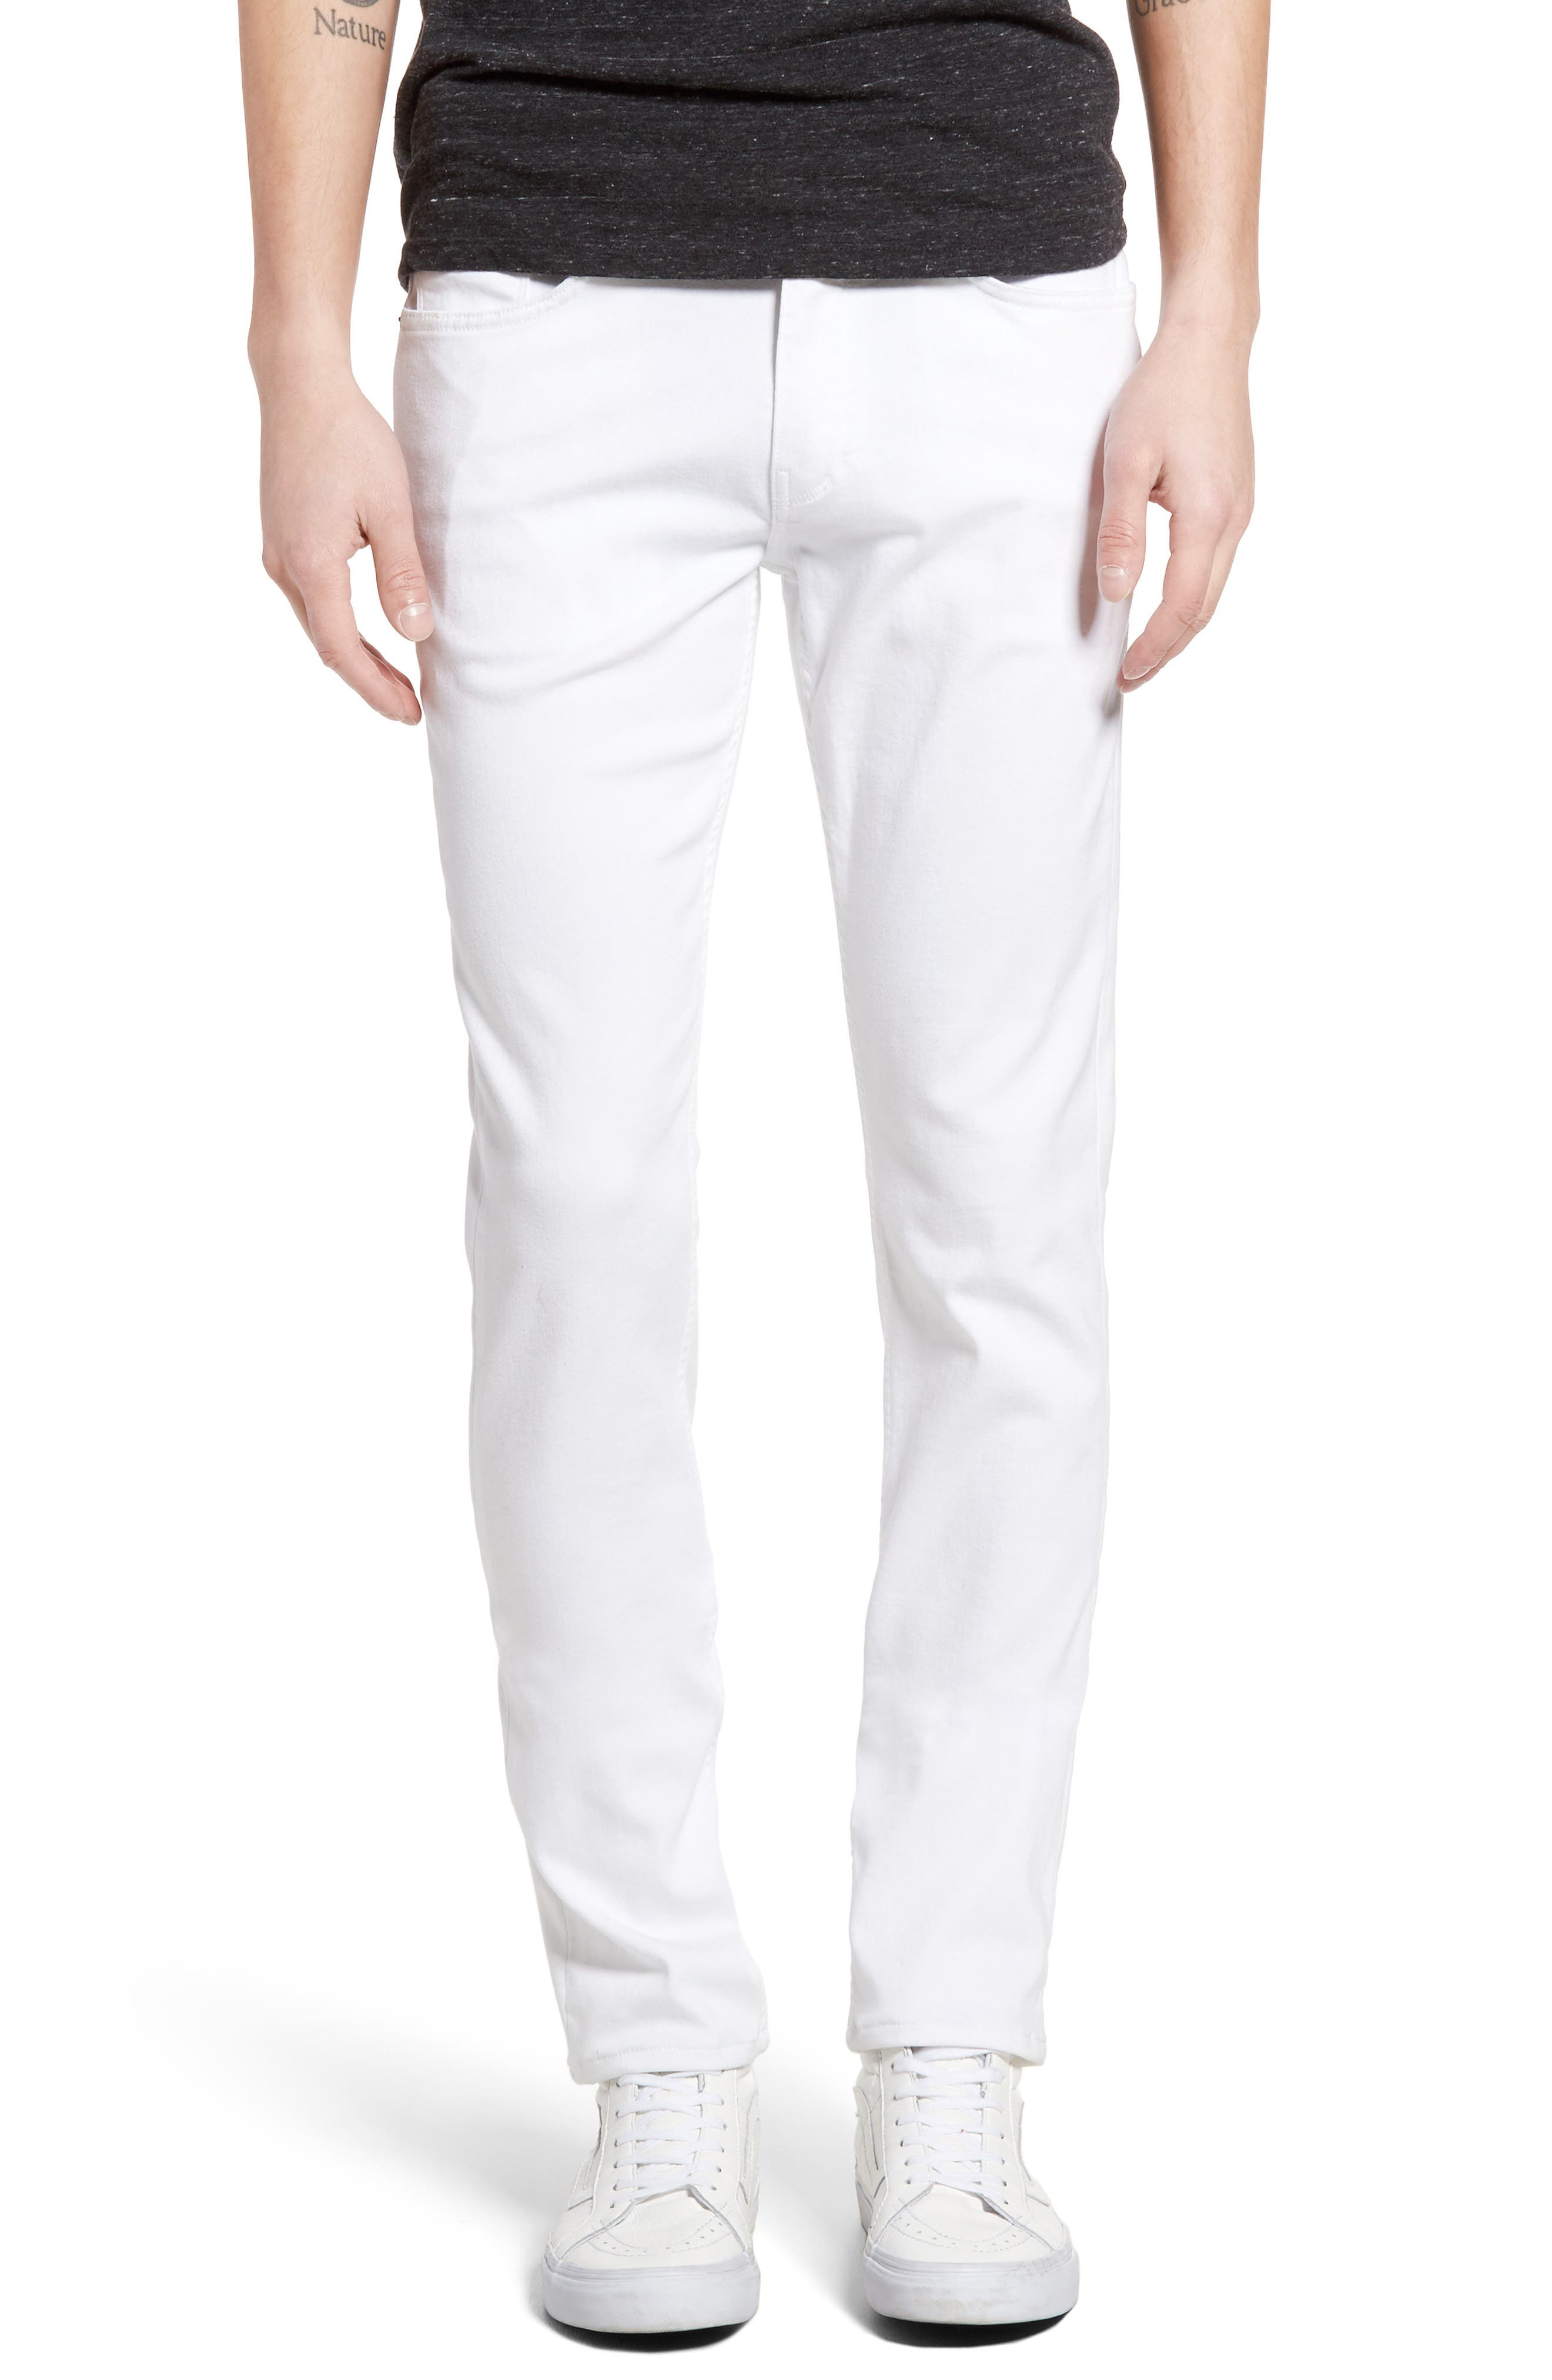 Alternate Image 1 Selected - PAIGE Lennox TRANSCEND Slim Fit Jeans (Icecap)